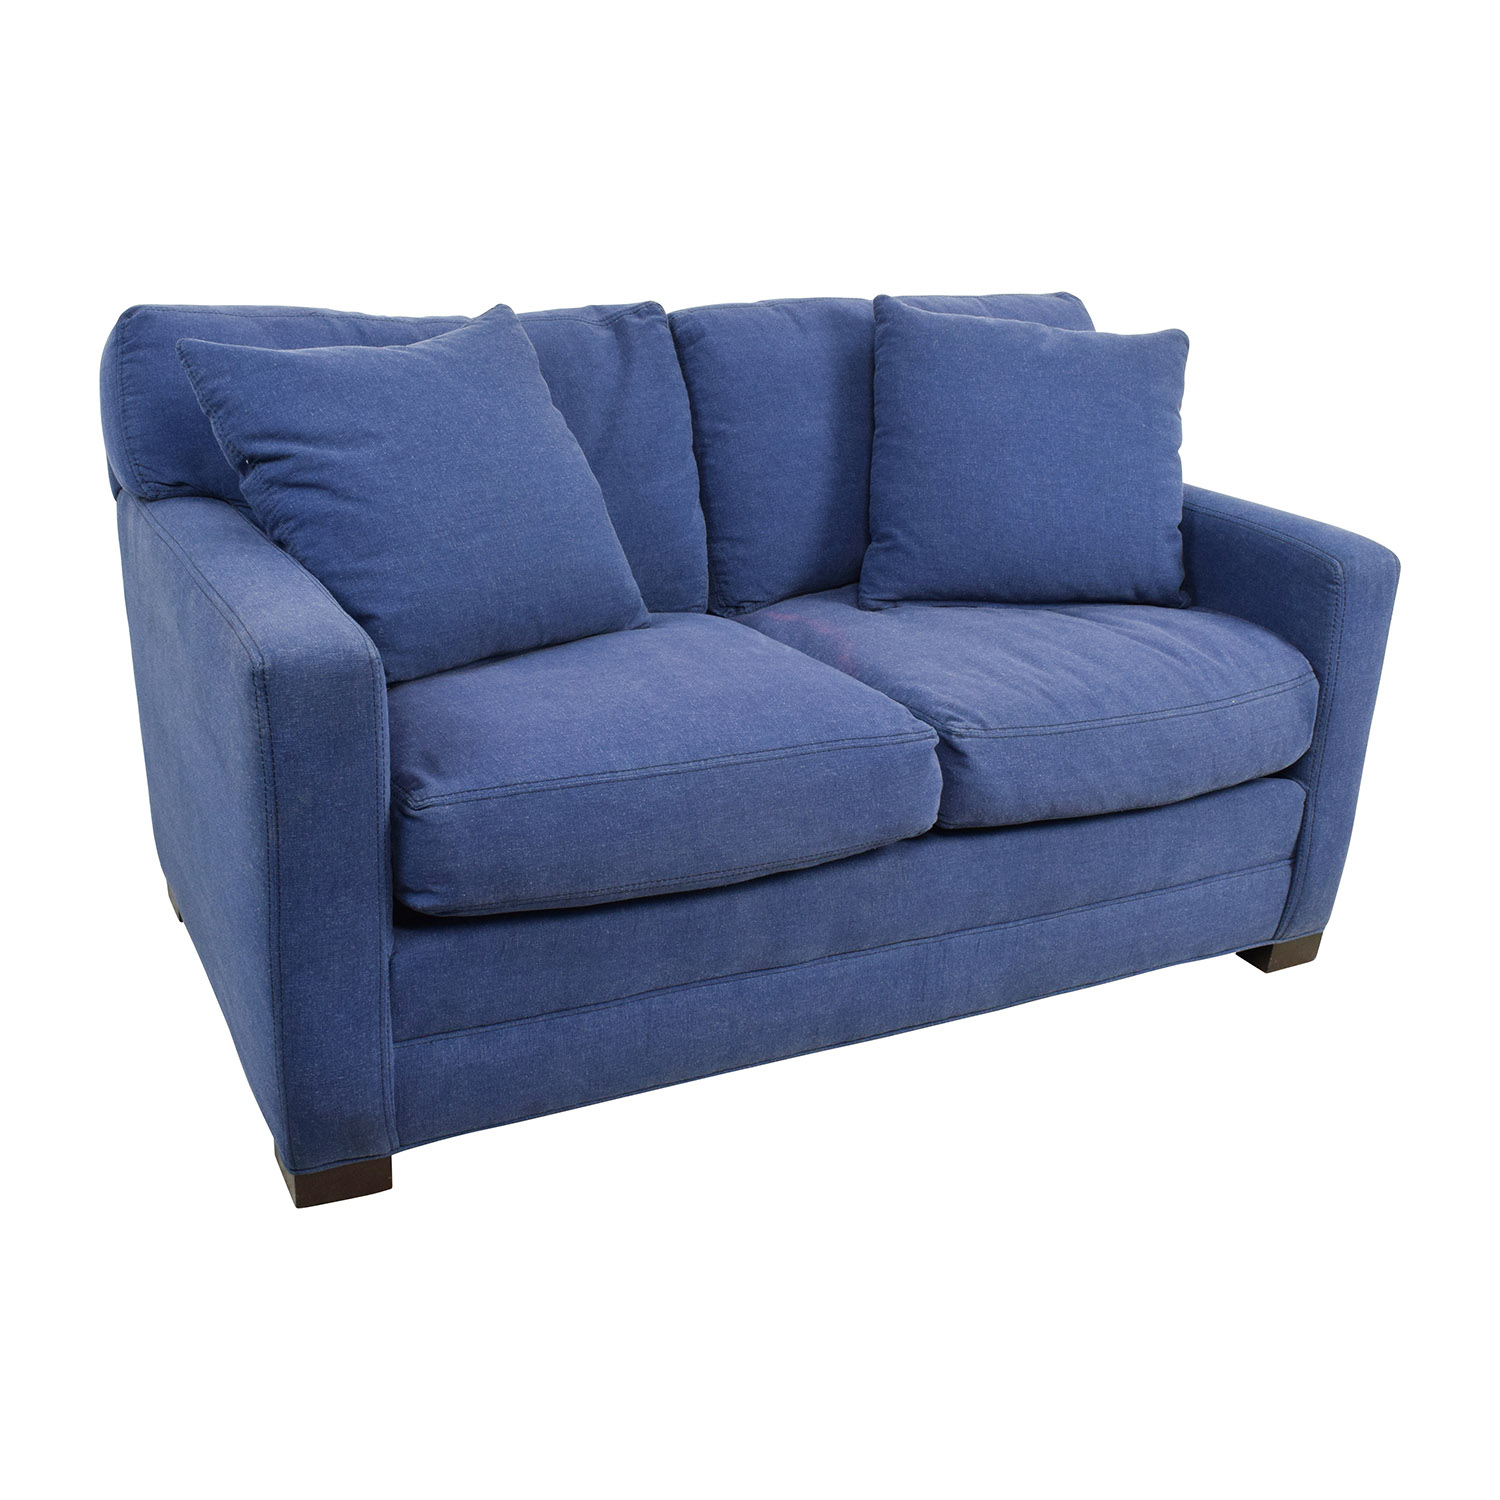 blue jean stain on sofa corner bed chaise longue the most stylish as well attractive denim loveseats